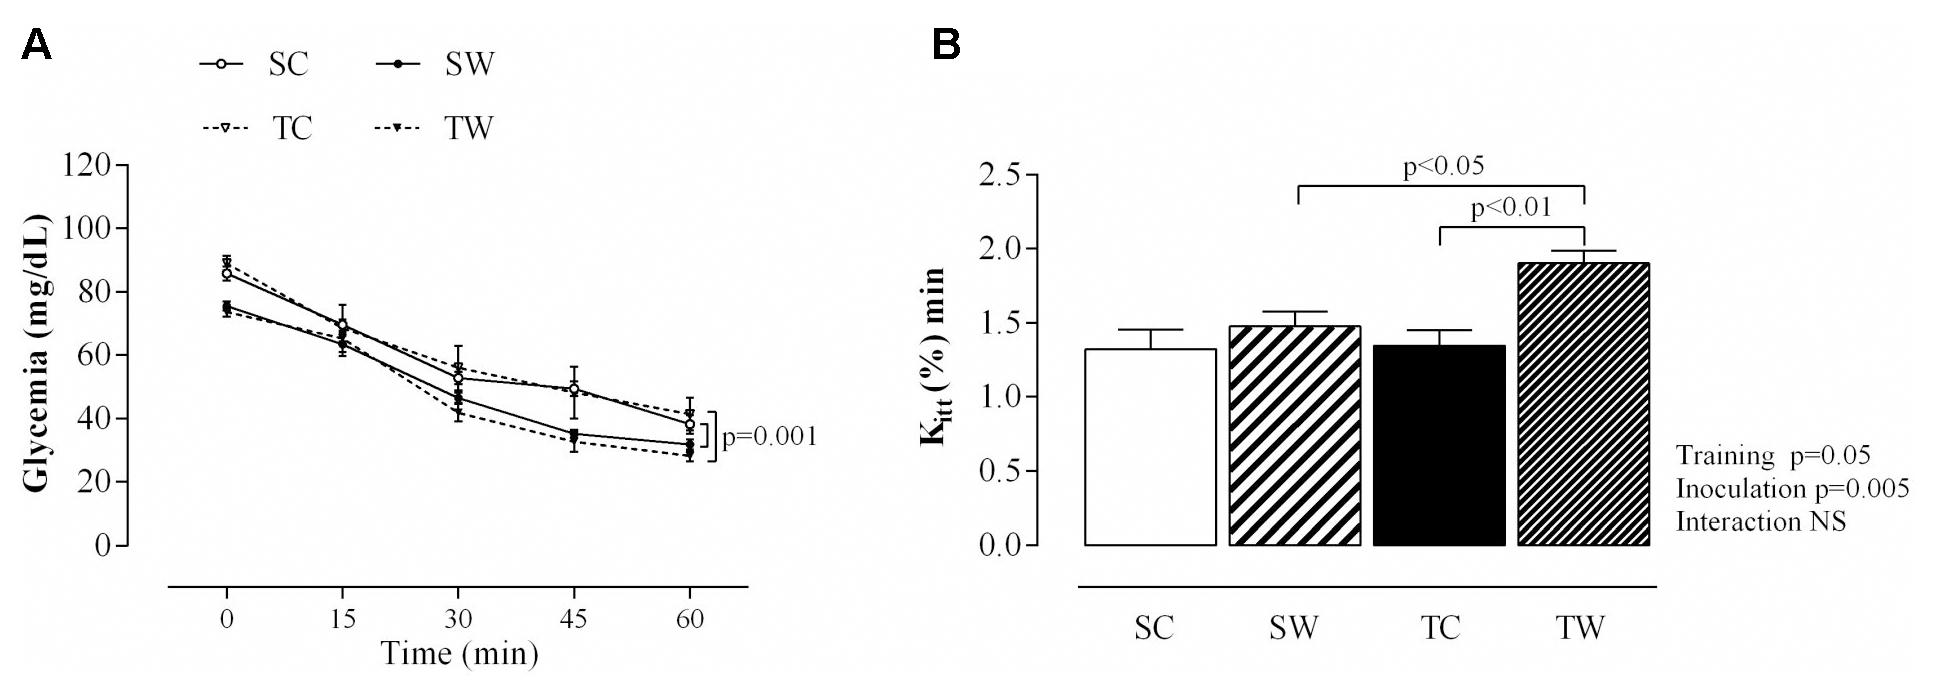 Frontiers Aerobic Exercise Training Attenuates Tumor Growth And 1973 258 Wiring Harness Diagrams